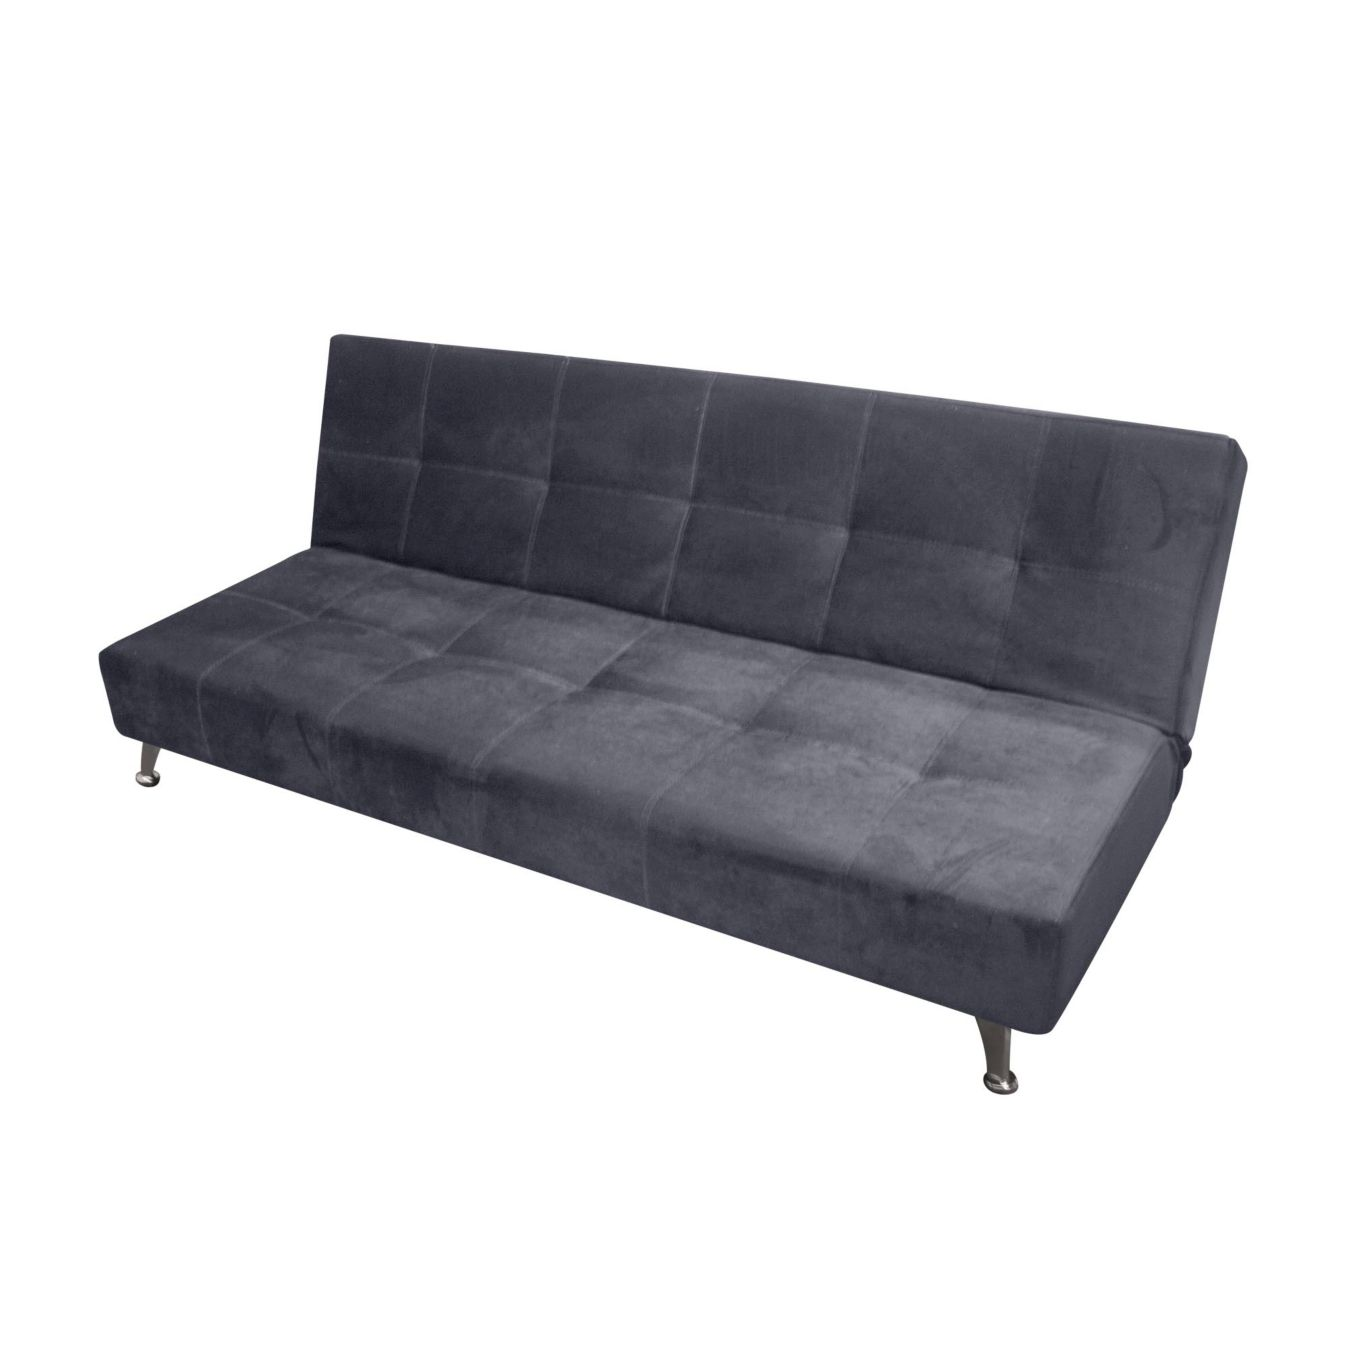 Sofa cama nick murano negro   homecenter.com.co